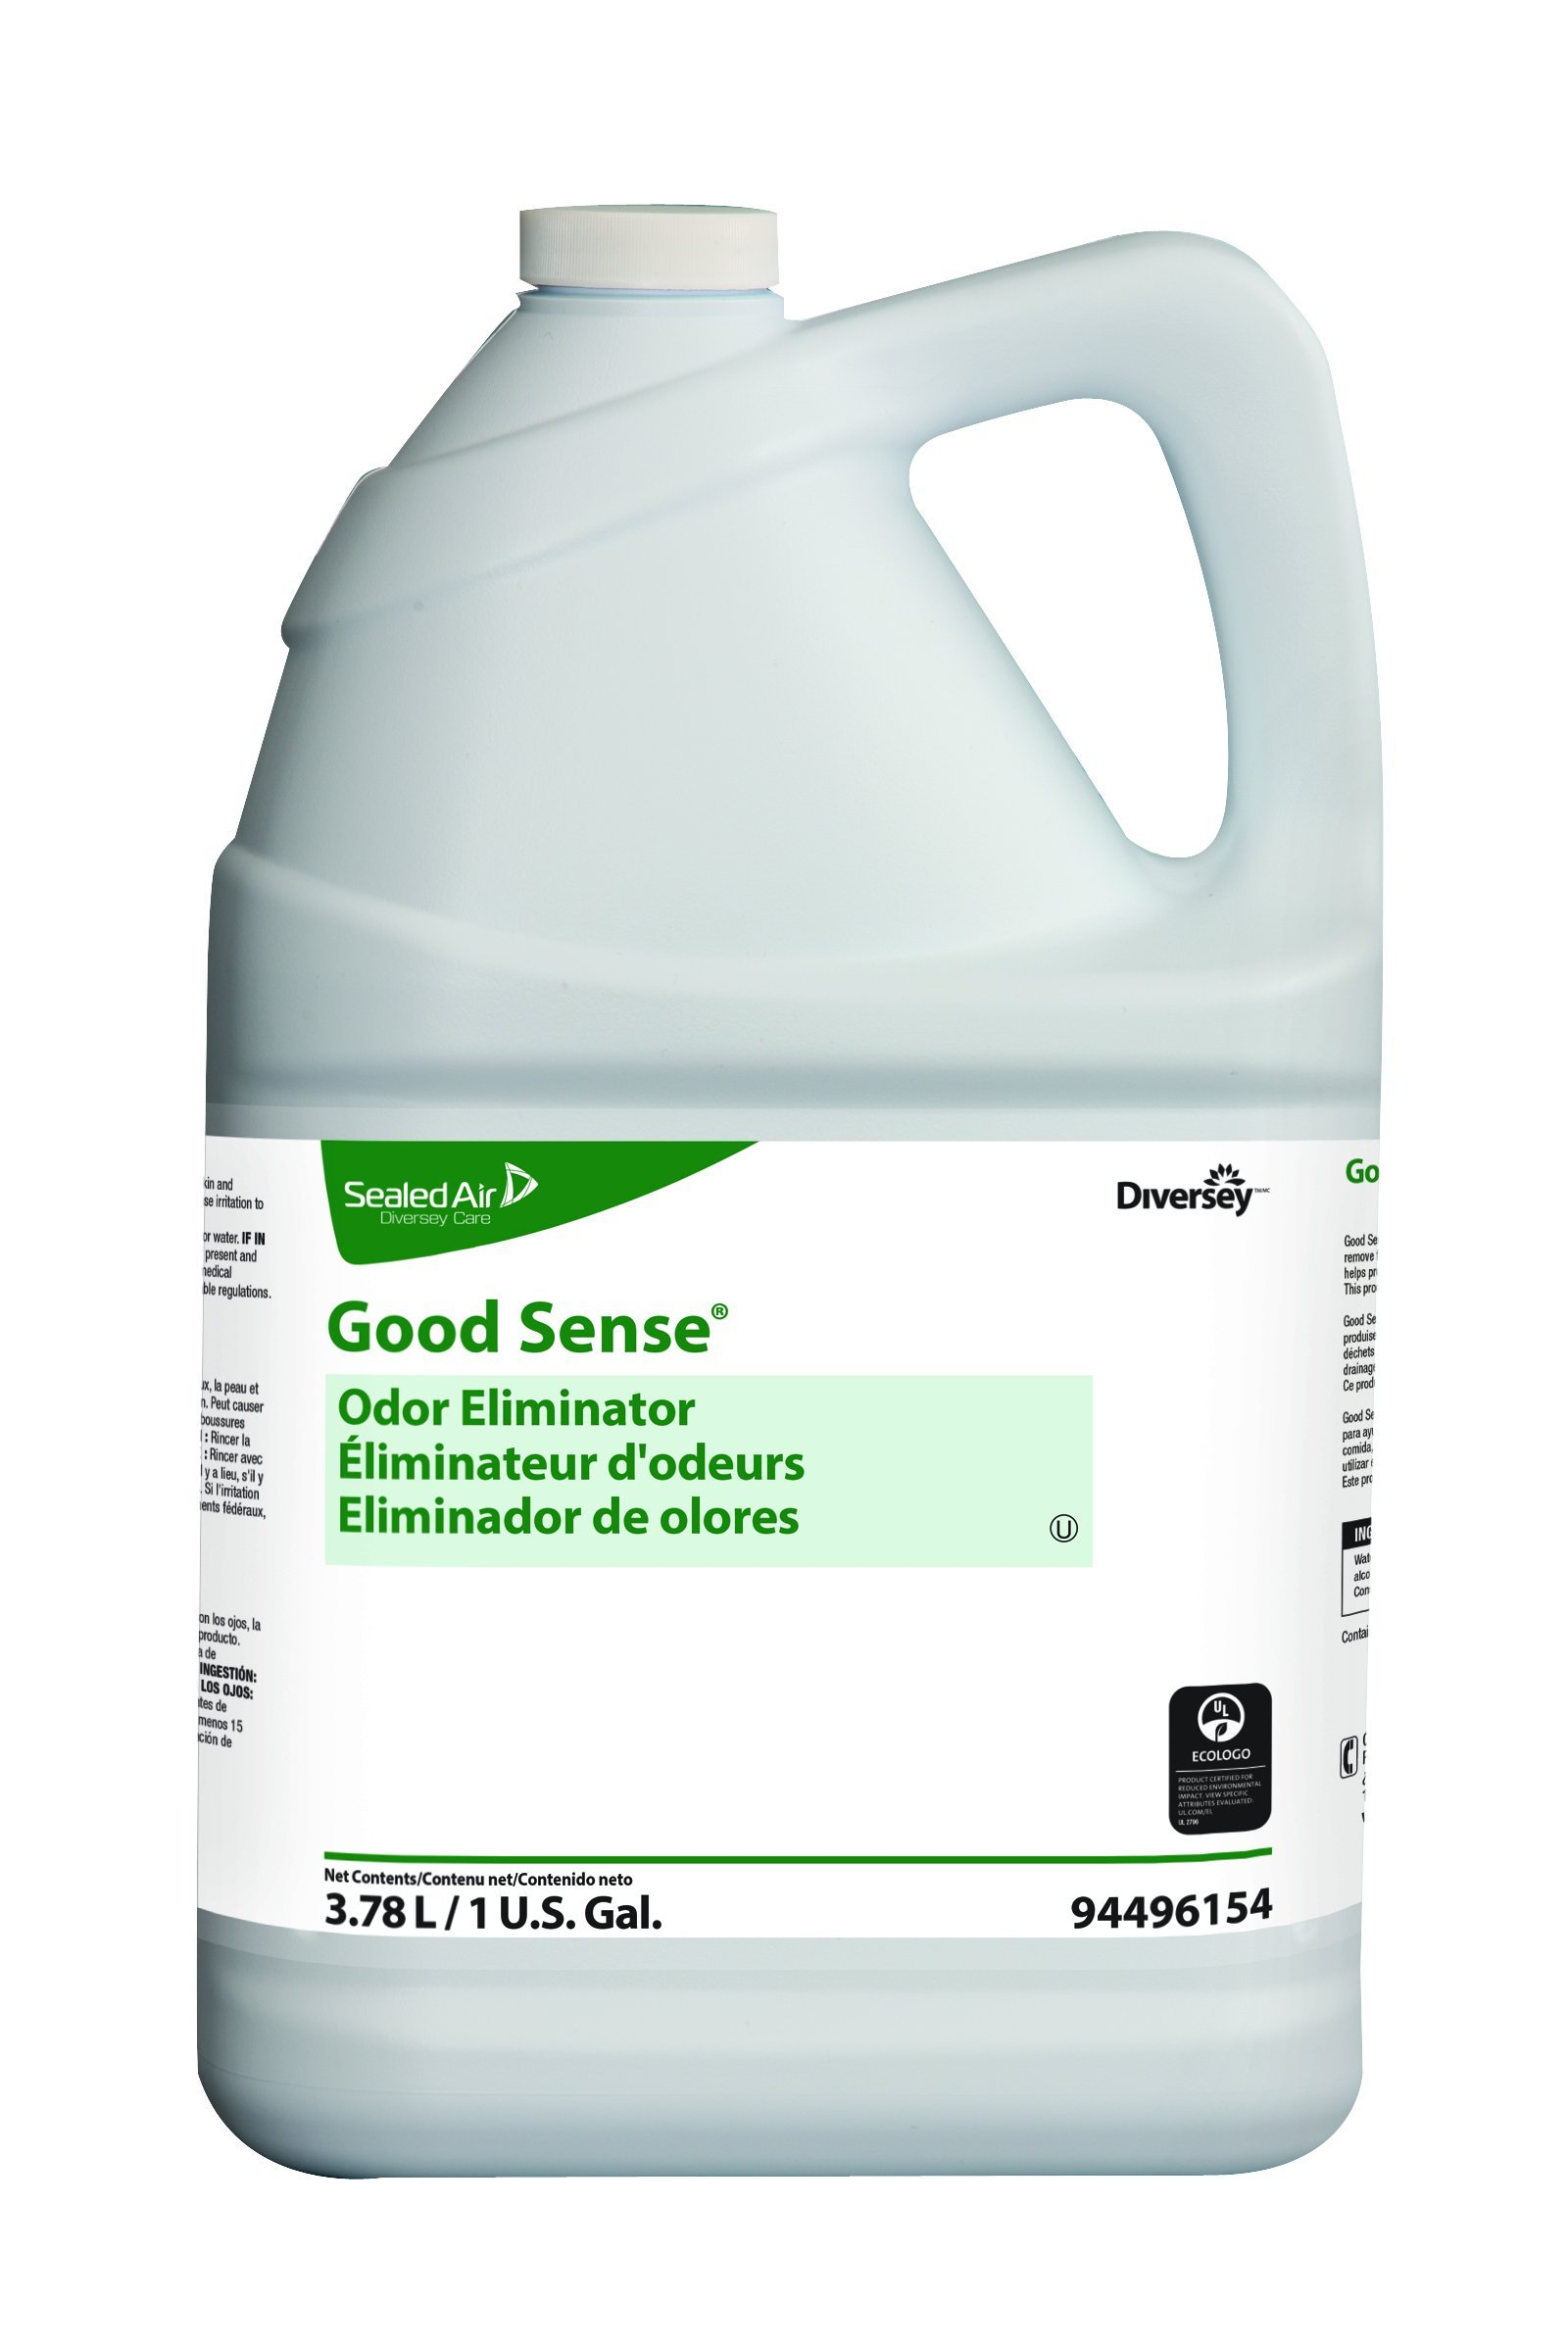 Diversey Good Sense 94496154 Odor Eliminator, 4 x 1 gal/3.78 L Containers (Pack of 4) by Diversey